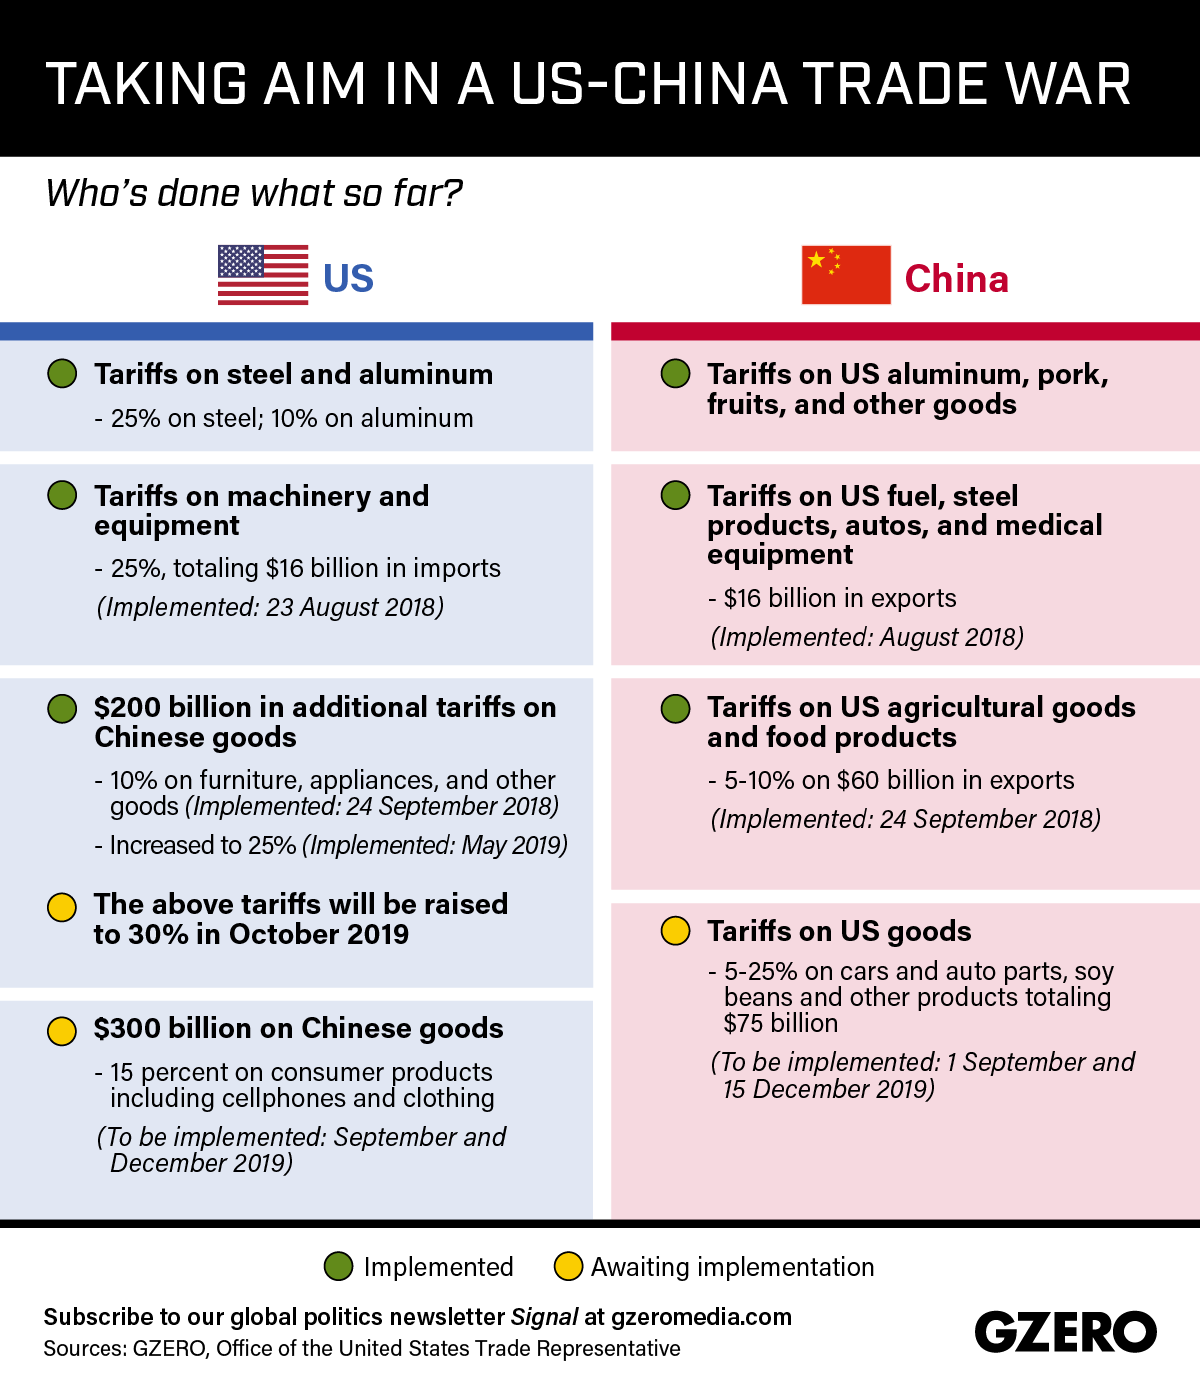 Graphic Truth: Taking aim in a US-China trade war